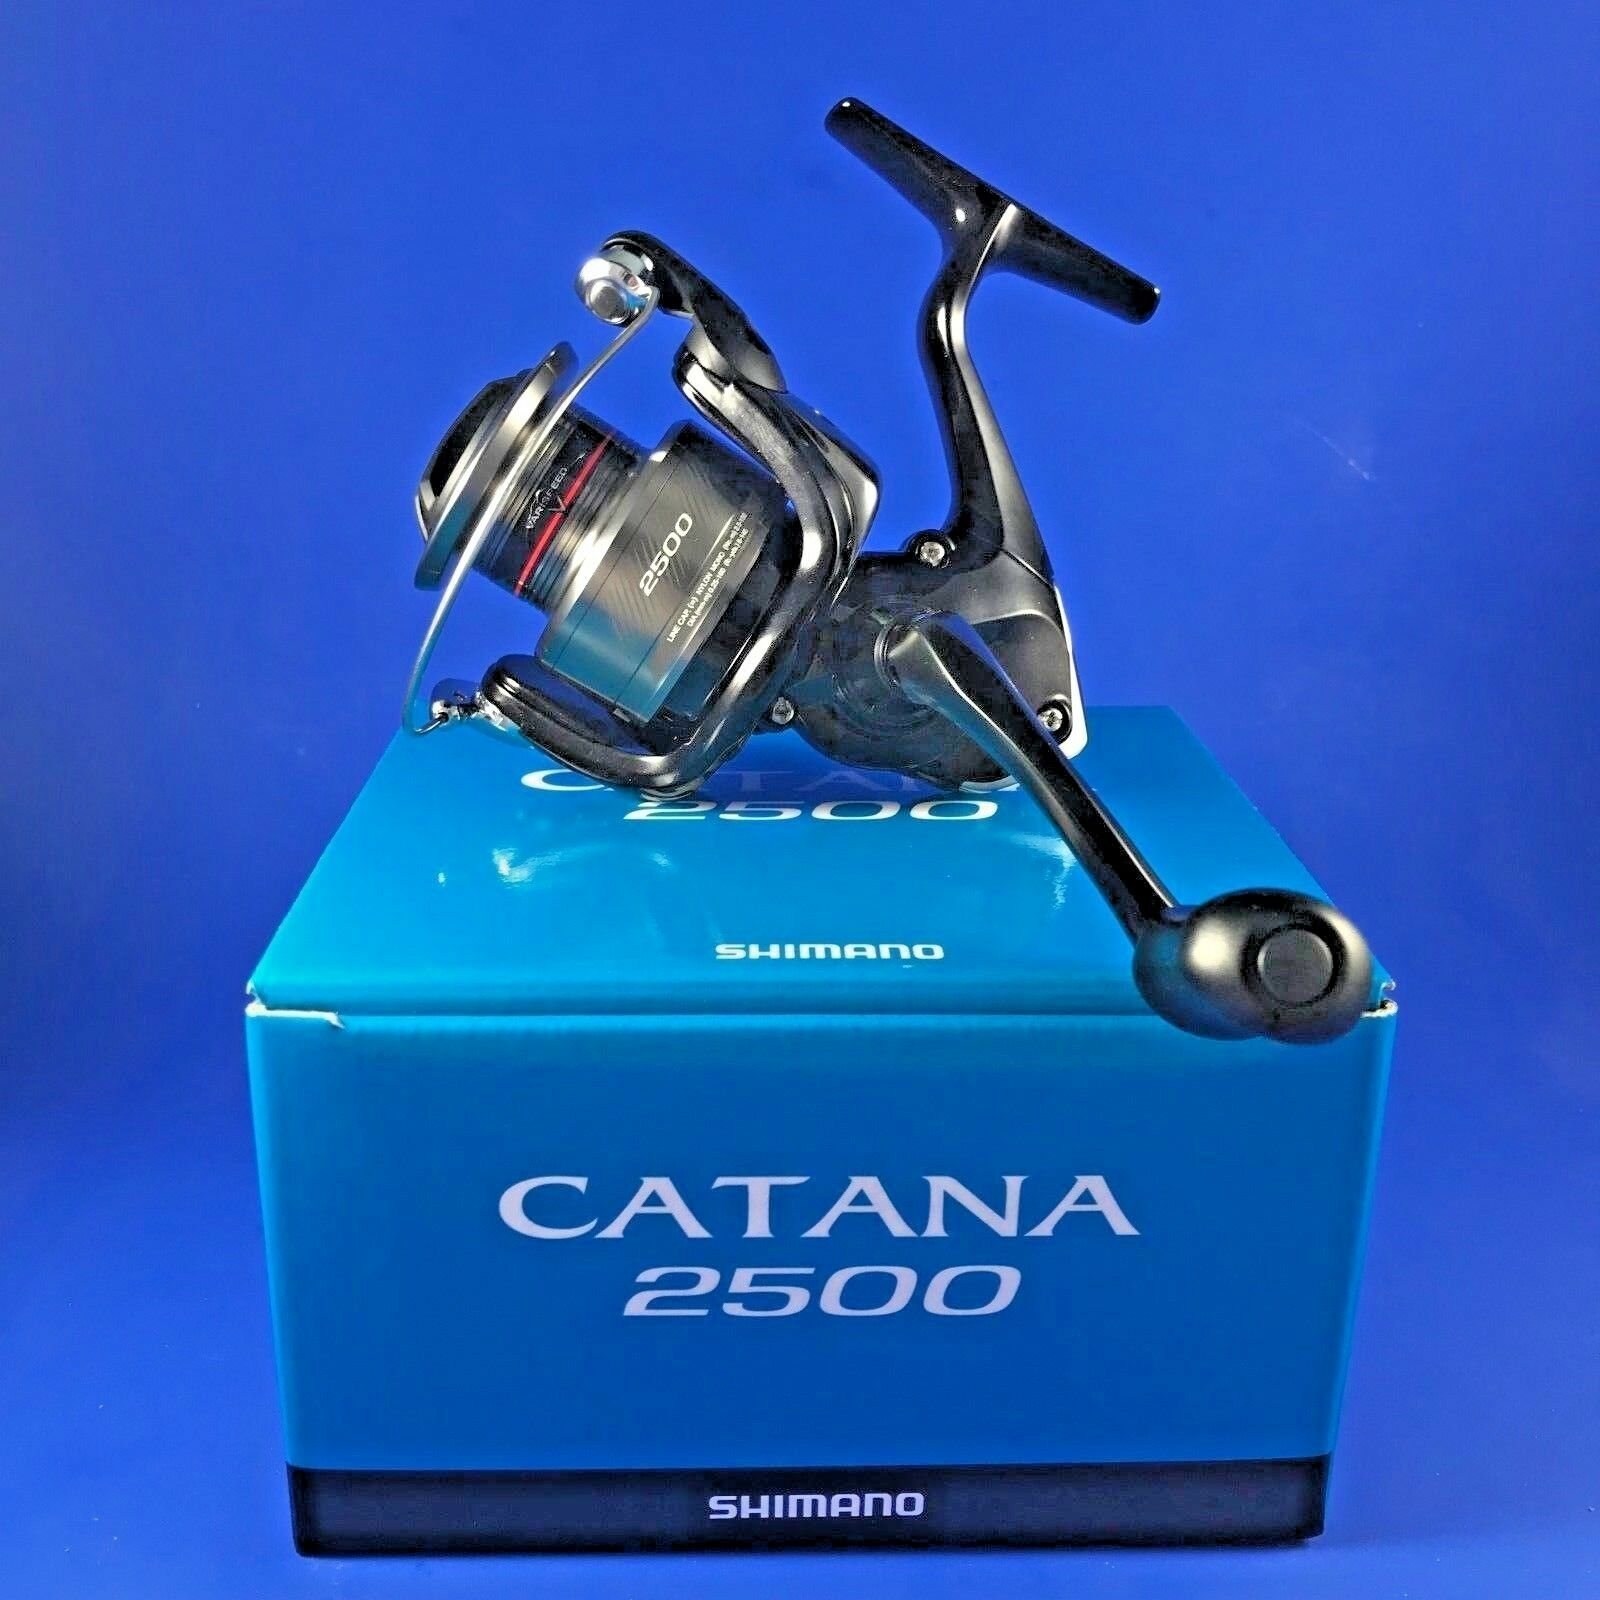 Shimano Catana 2500 FD // CAT2500FD // Front Drag Fishing Reel